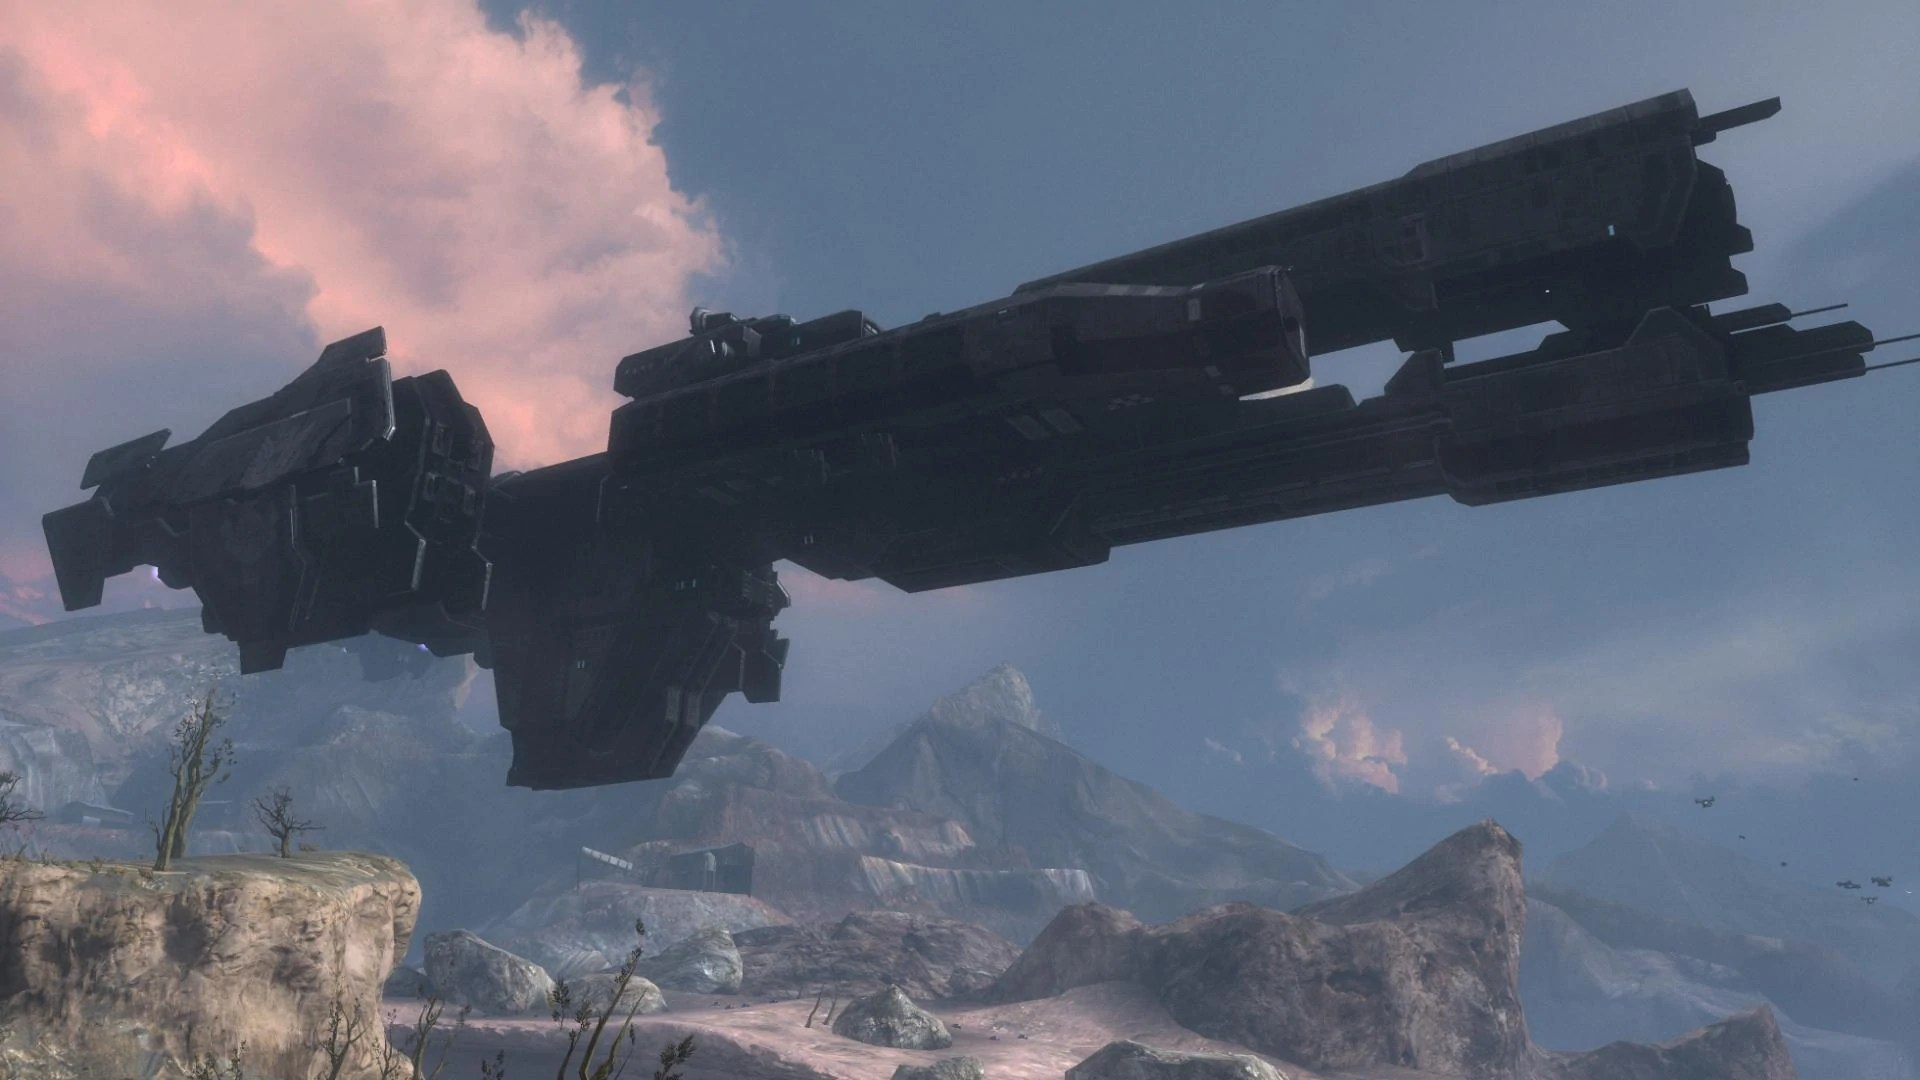 Halo Wallpaper Fall Of Reach Unsc New Alexandria Halo Redemption Wiki Fandom